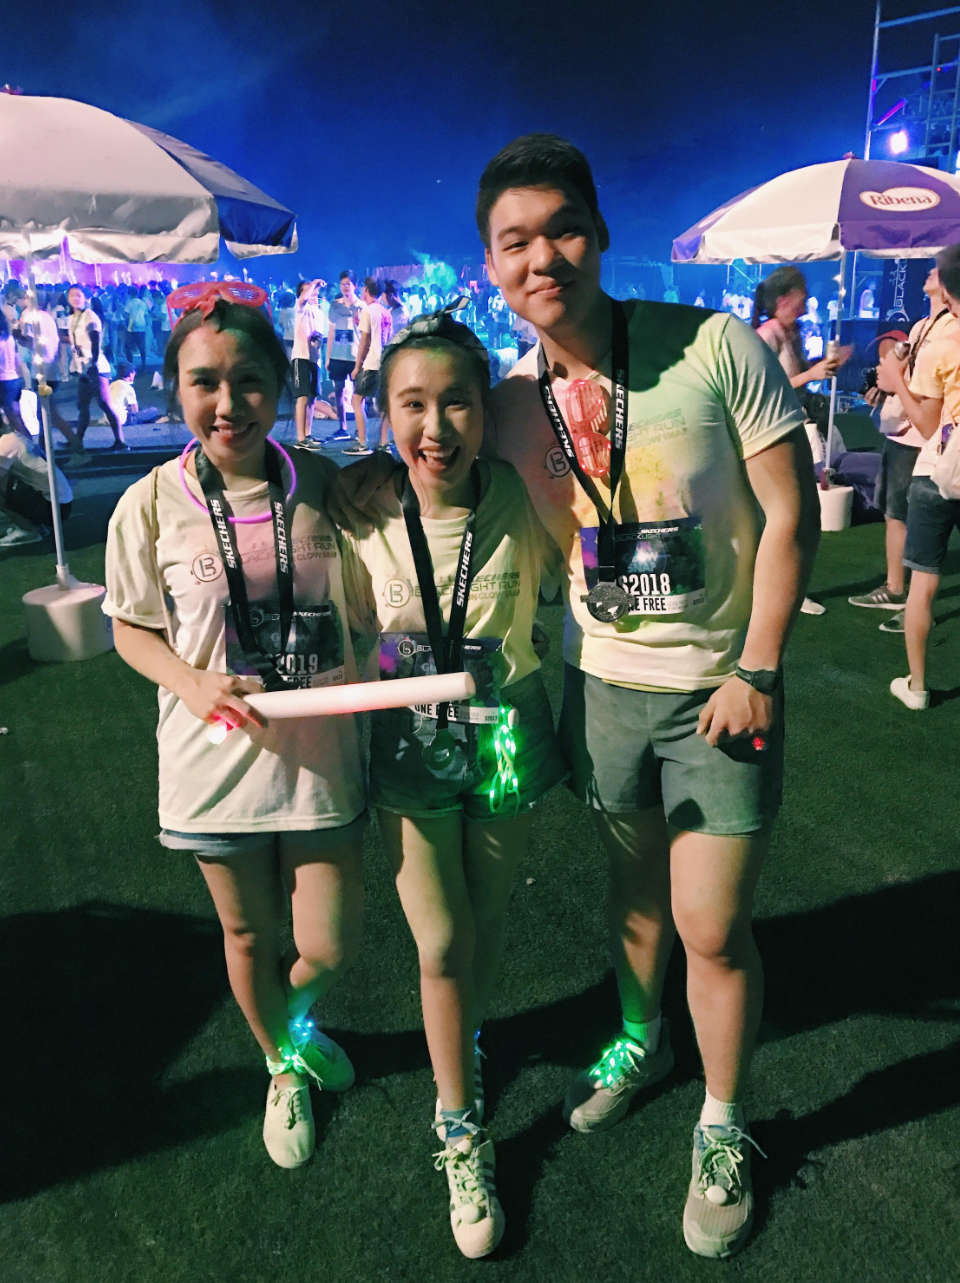 Skechers-Blacklight-Run-2017-Race-Review-We-Had-A-Glowing-Good-Time-6